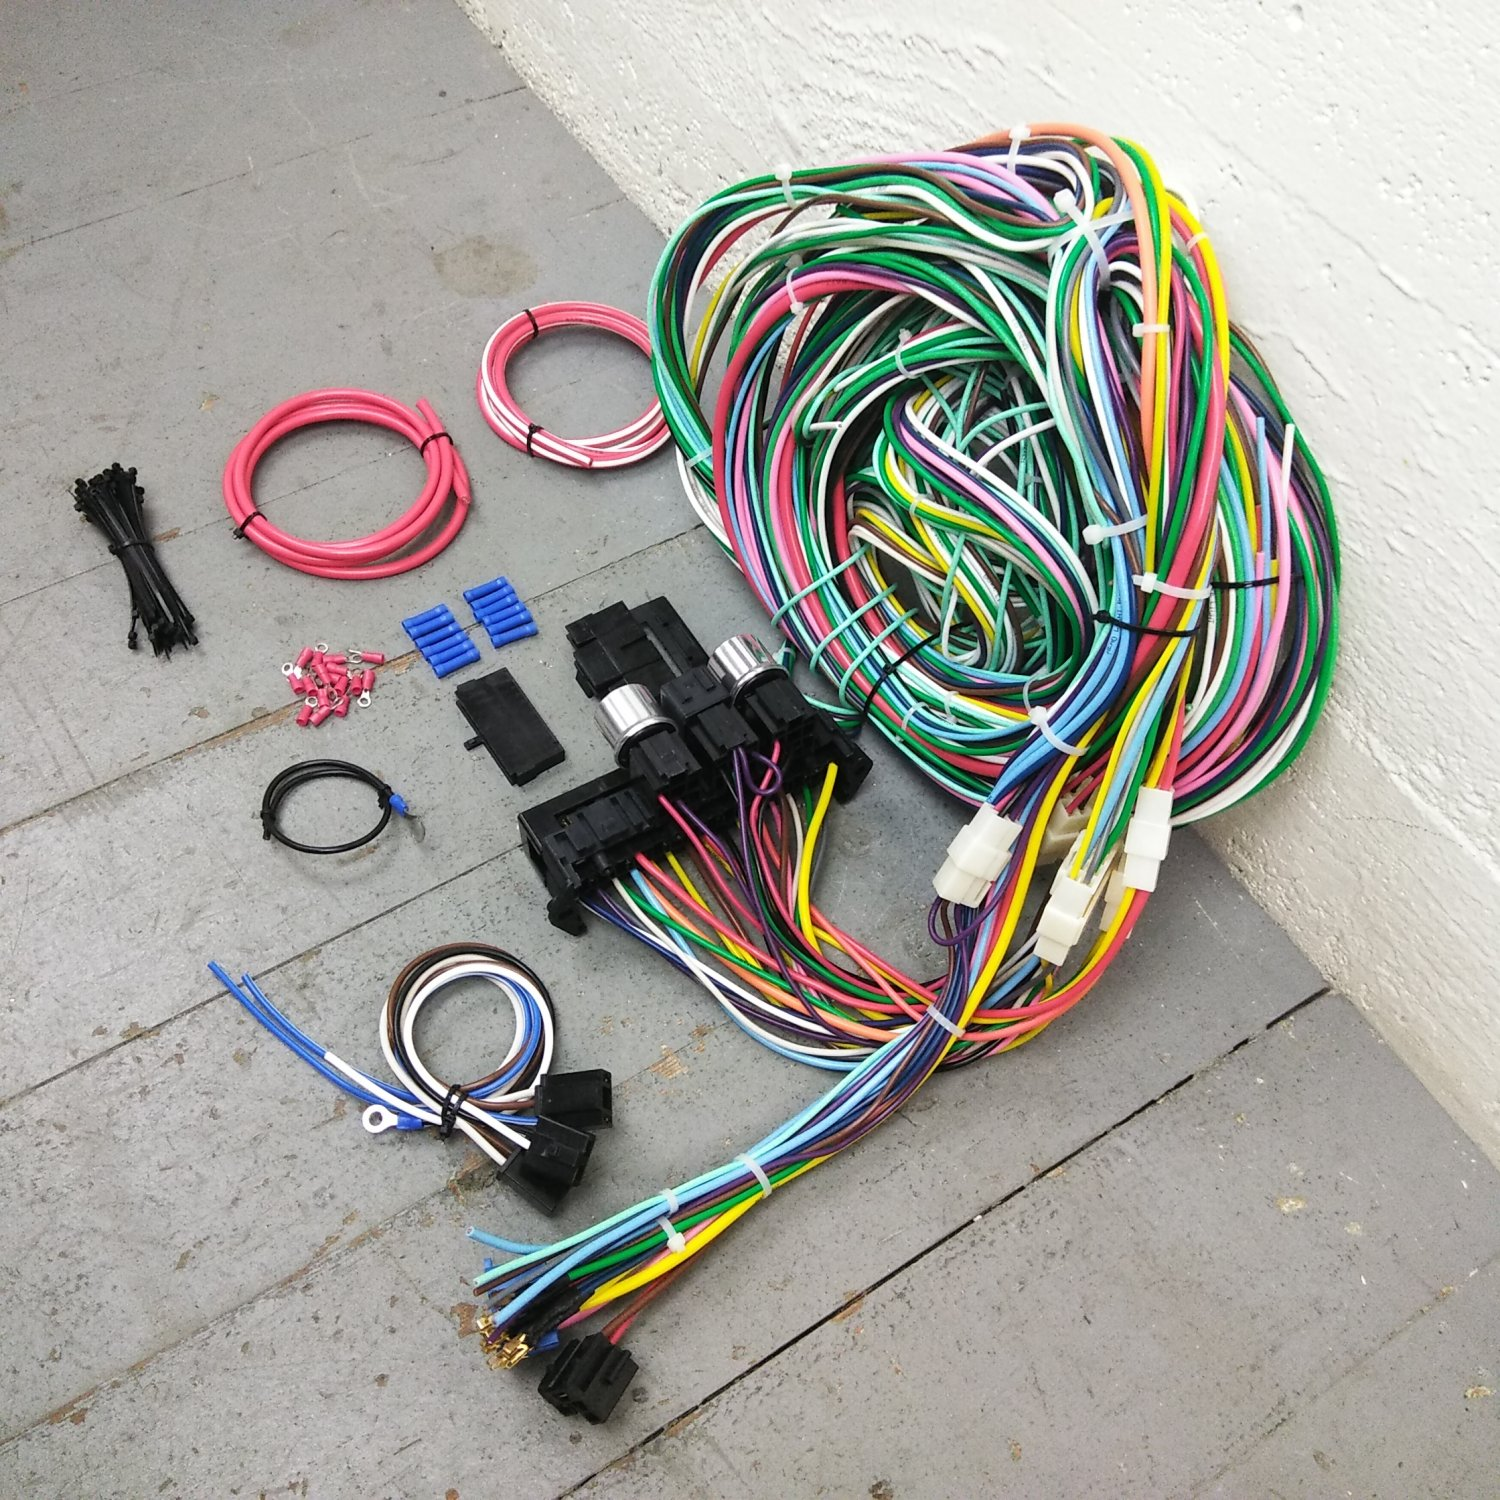 hight resolution of 1935 1940 ford rhd wire harness upgrade kit fits painless compact new fuse kic bar product description c